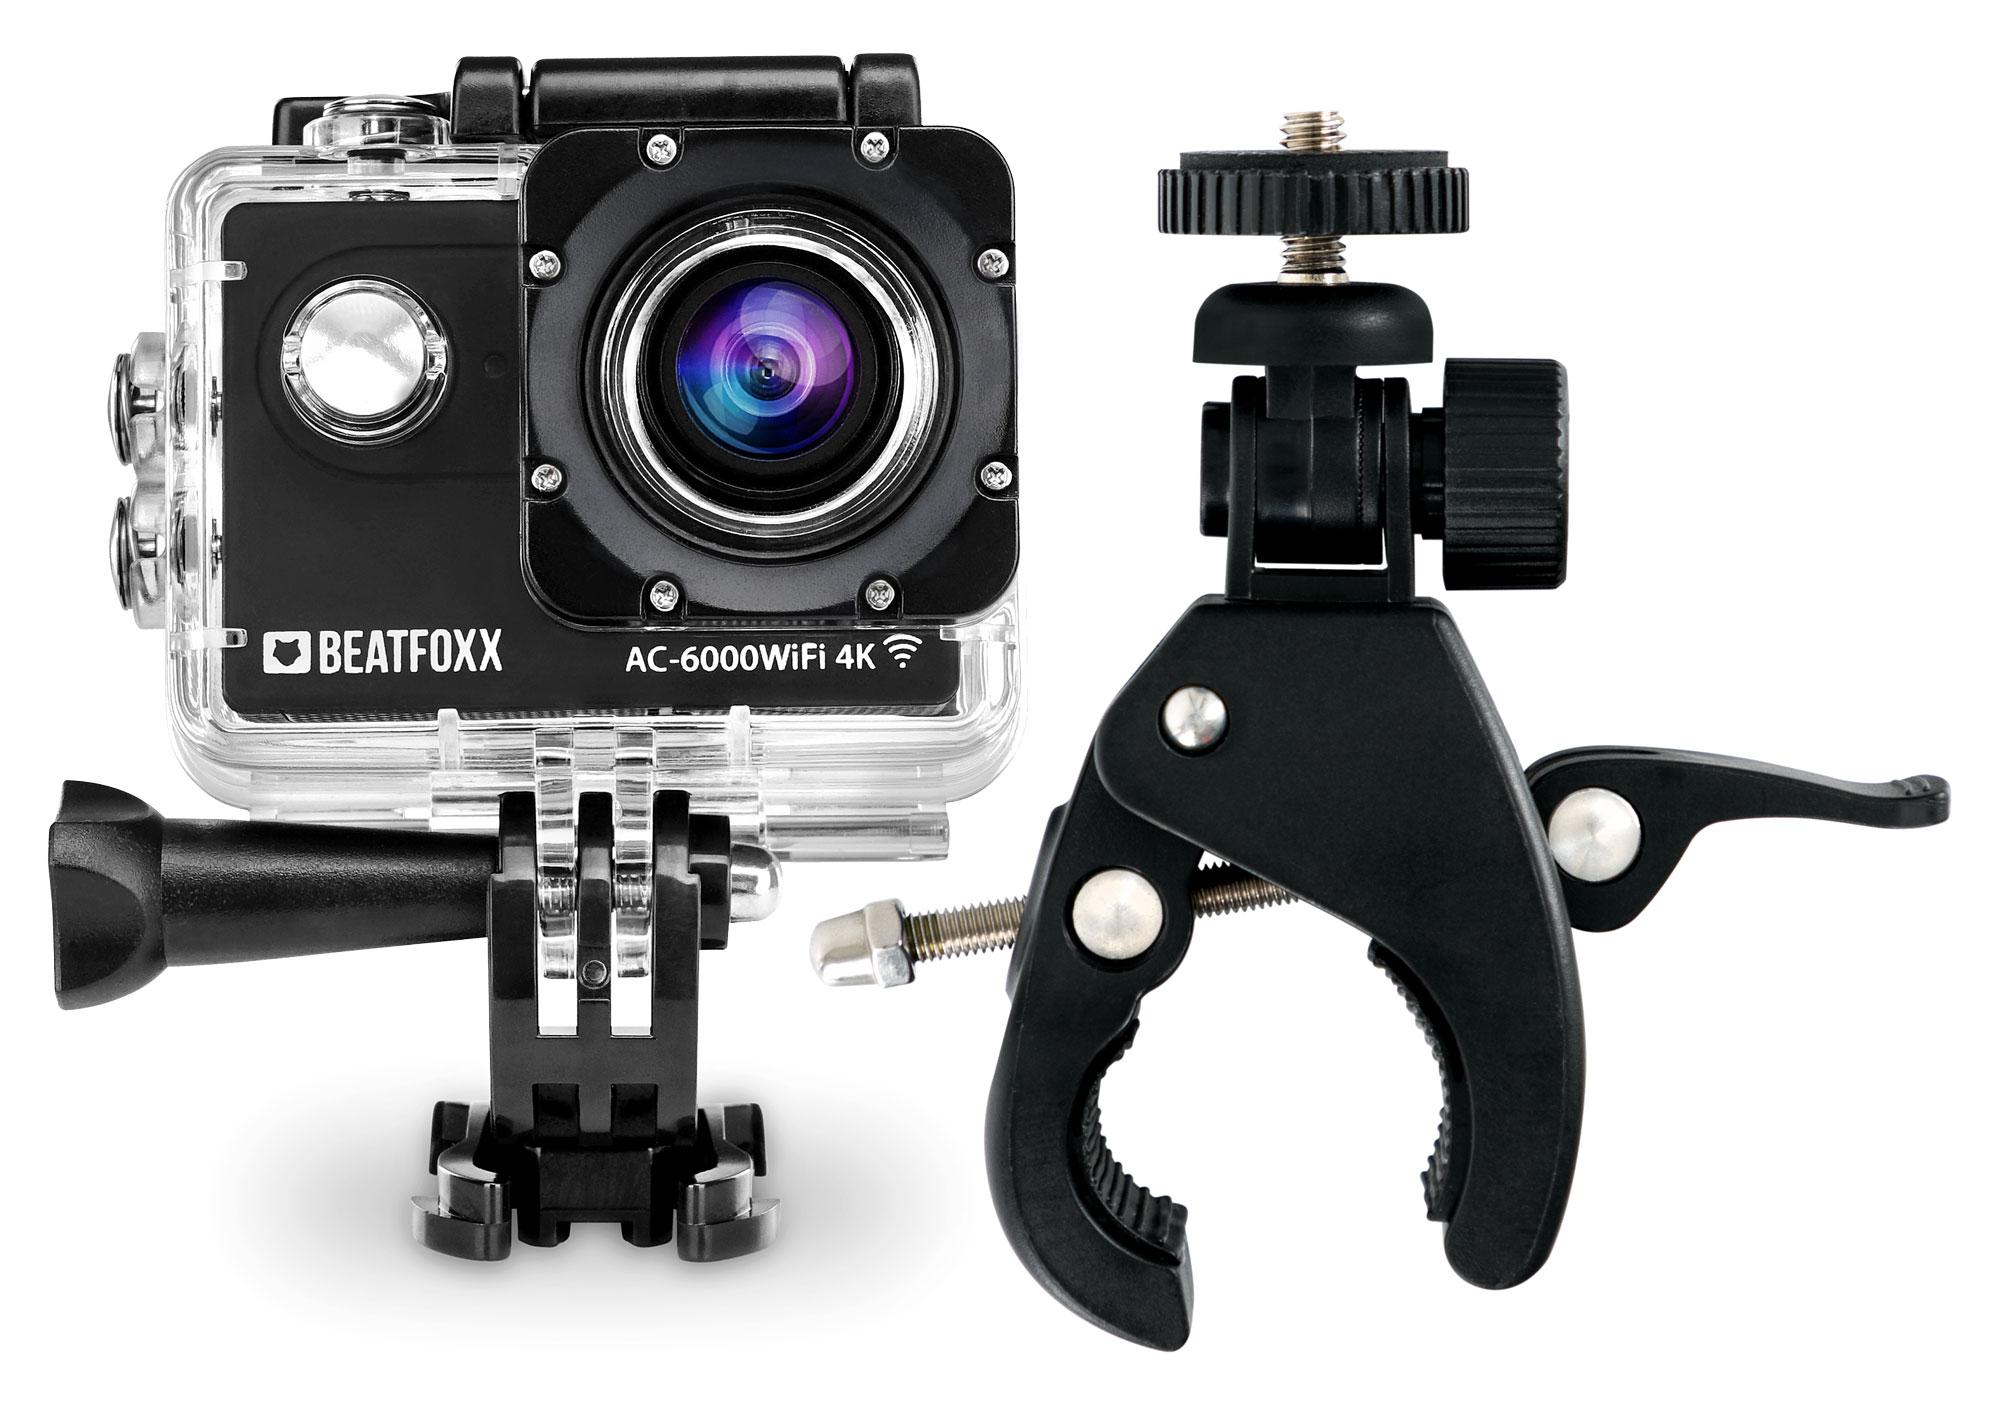 Beatfoxx AC-6000WiFi 4K Action Camera + Special FlexClamp Holder